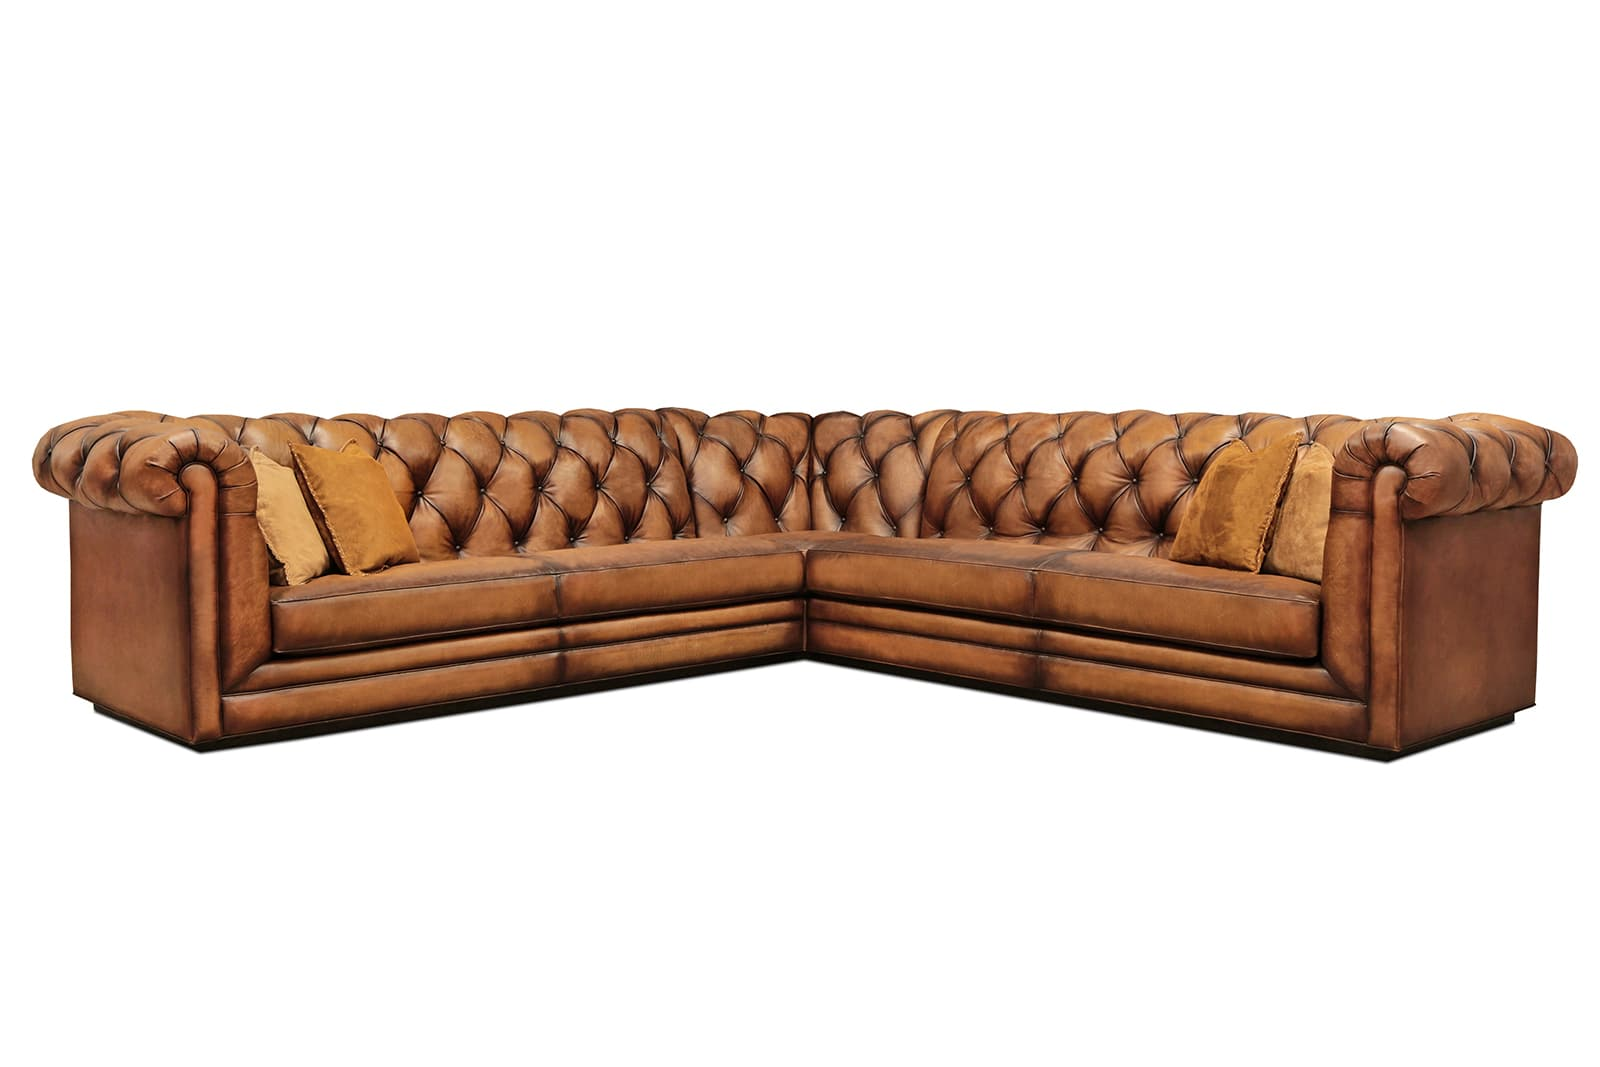 CHEYNE CHESTERFIELD 32 33 85 MAE CARTIER ANTIQUE CHESTNUT 4980 3